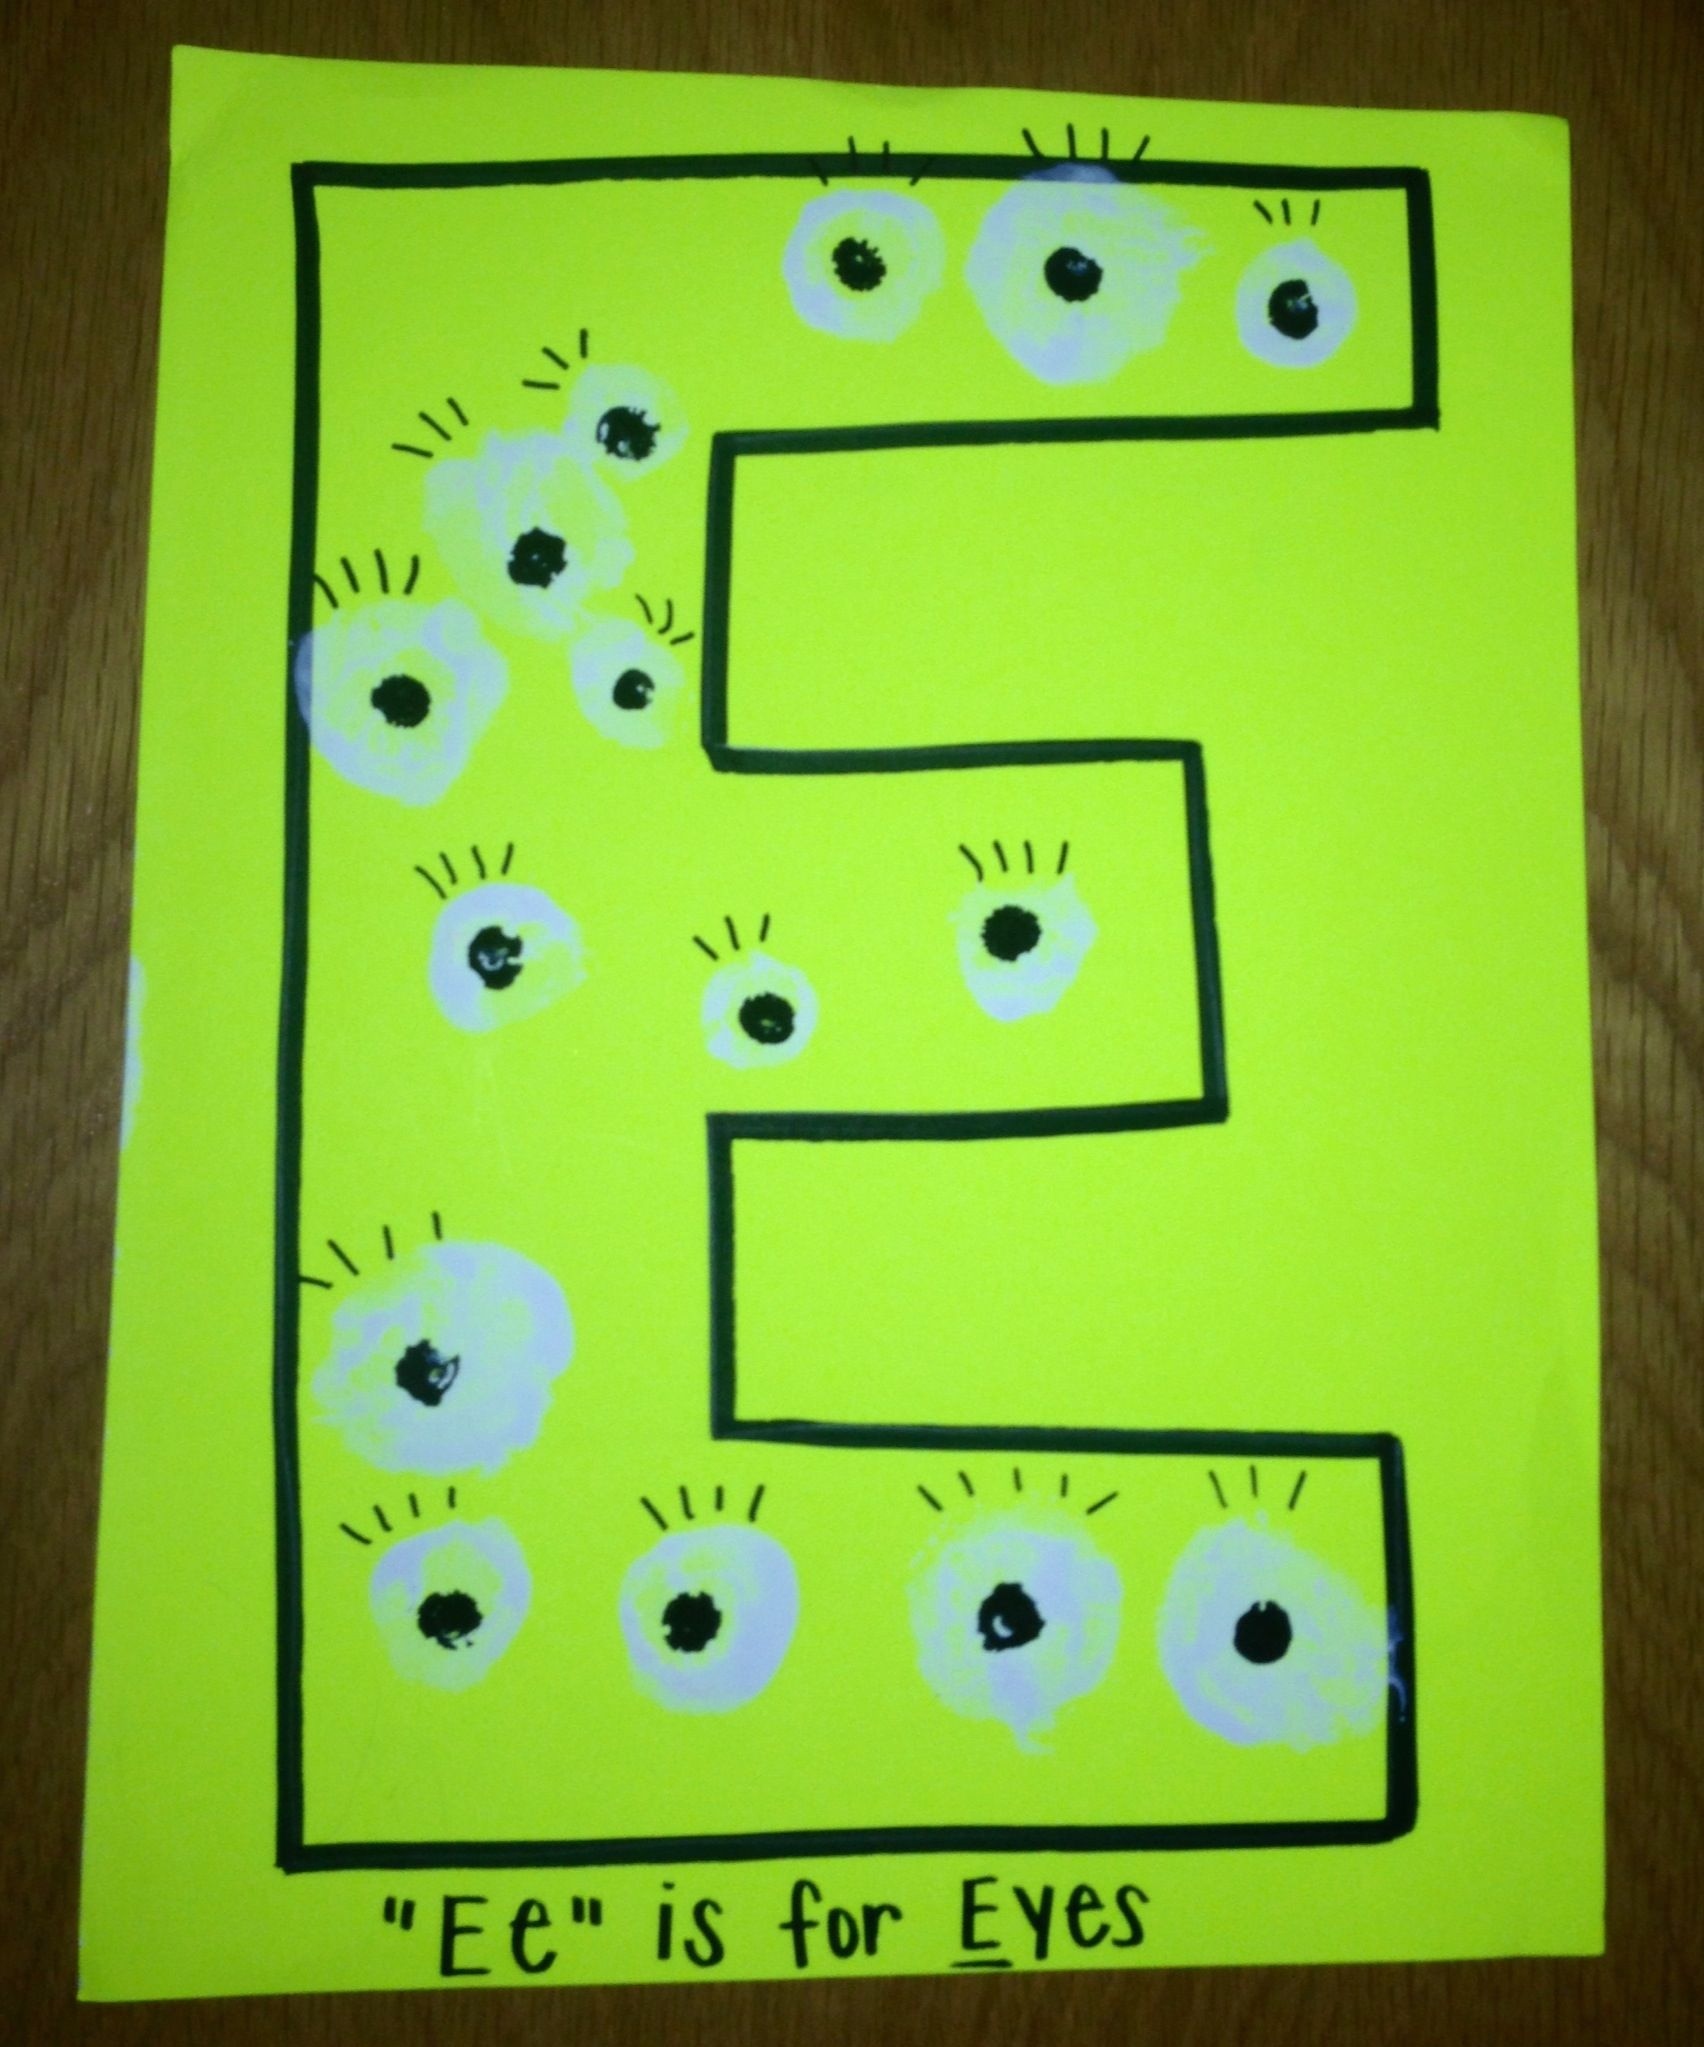 We All Worked Together To Make Eyes For The Letter E